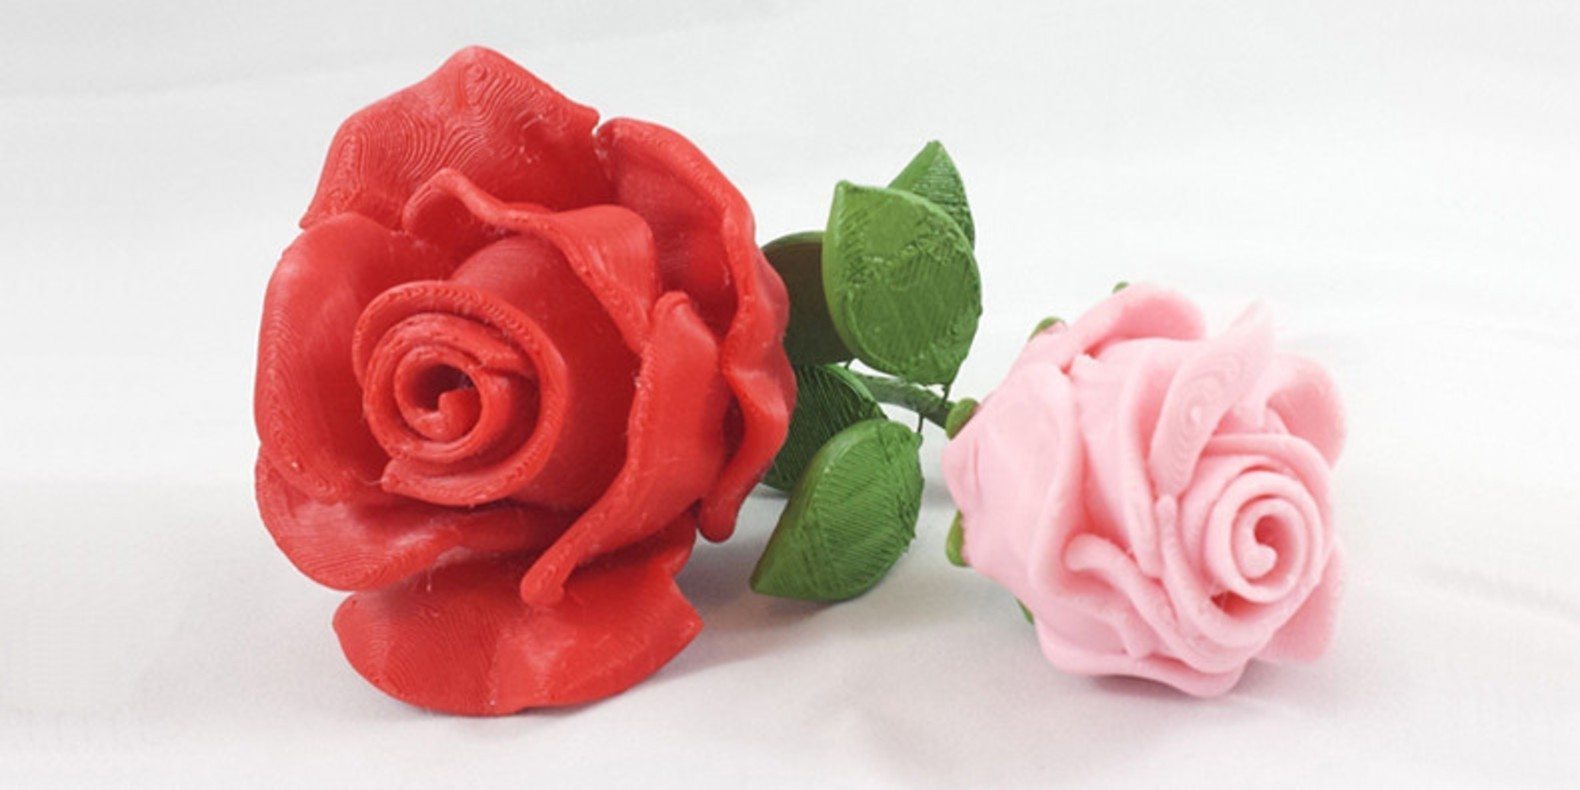 Download STL files to celebrate a 3D printing themed Valentine's Day